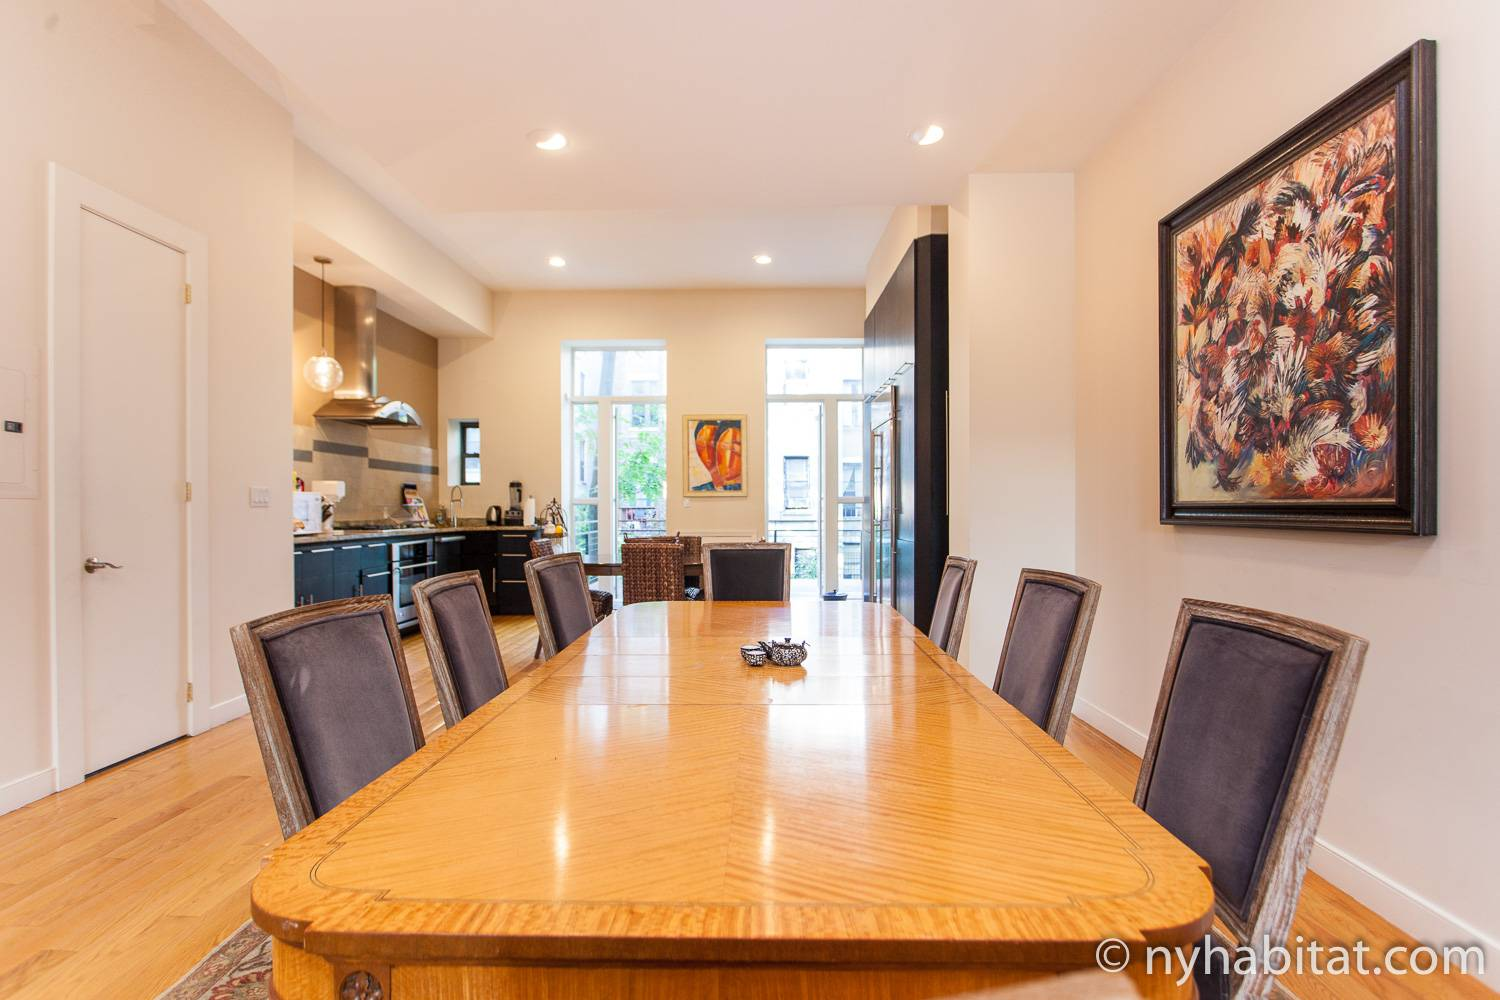 Image of a grand dining table of Harlem vacation rental NY-15383 peering into the open kitchen and balcony entrance.